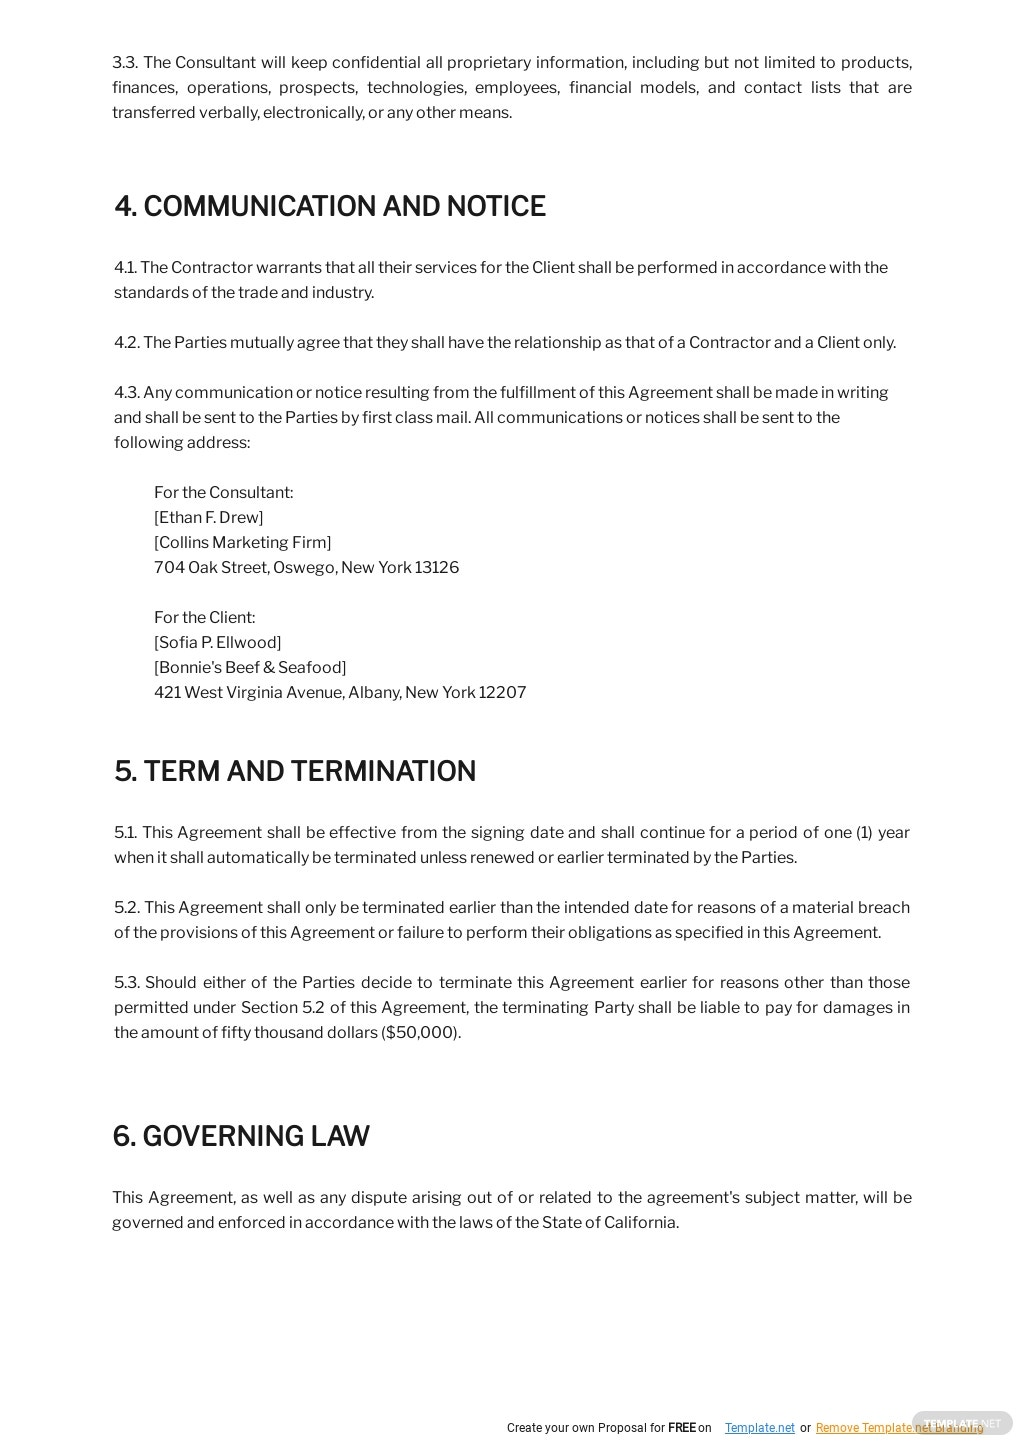 Restaurant Advertising Sales and Marketing Services Agreement Template 2.jpe